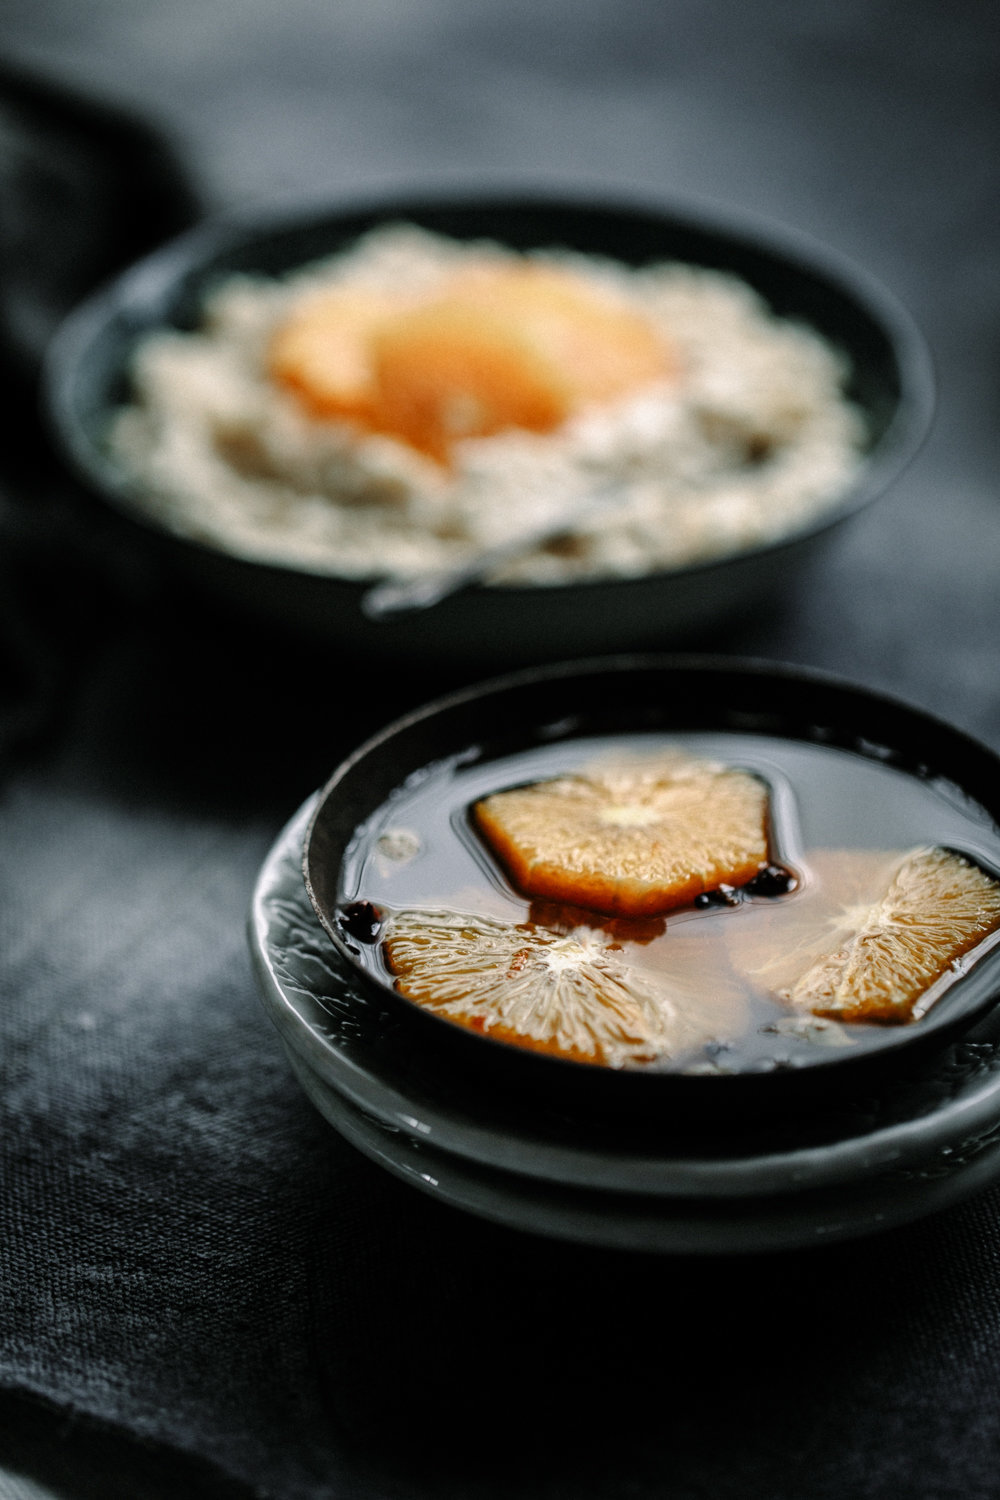 Rice Pudding With Rum Soaked Oranges - Anisa Sabet - The Macadames - Food Travel Lifestyle Photographer-299